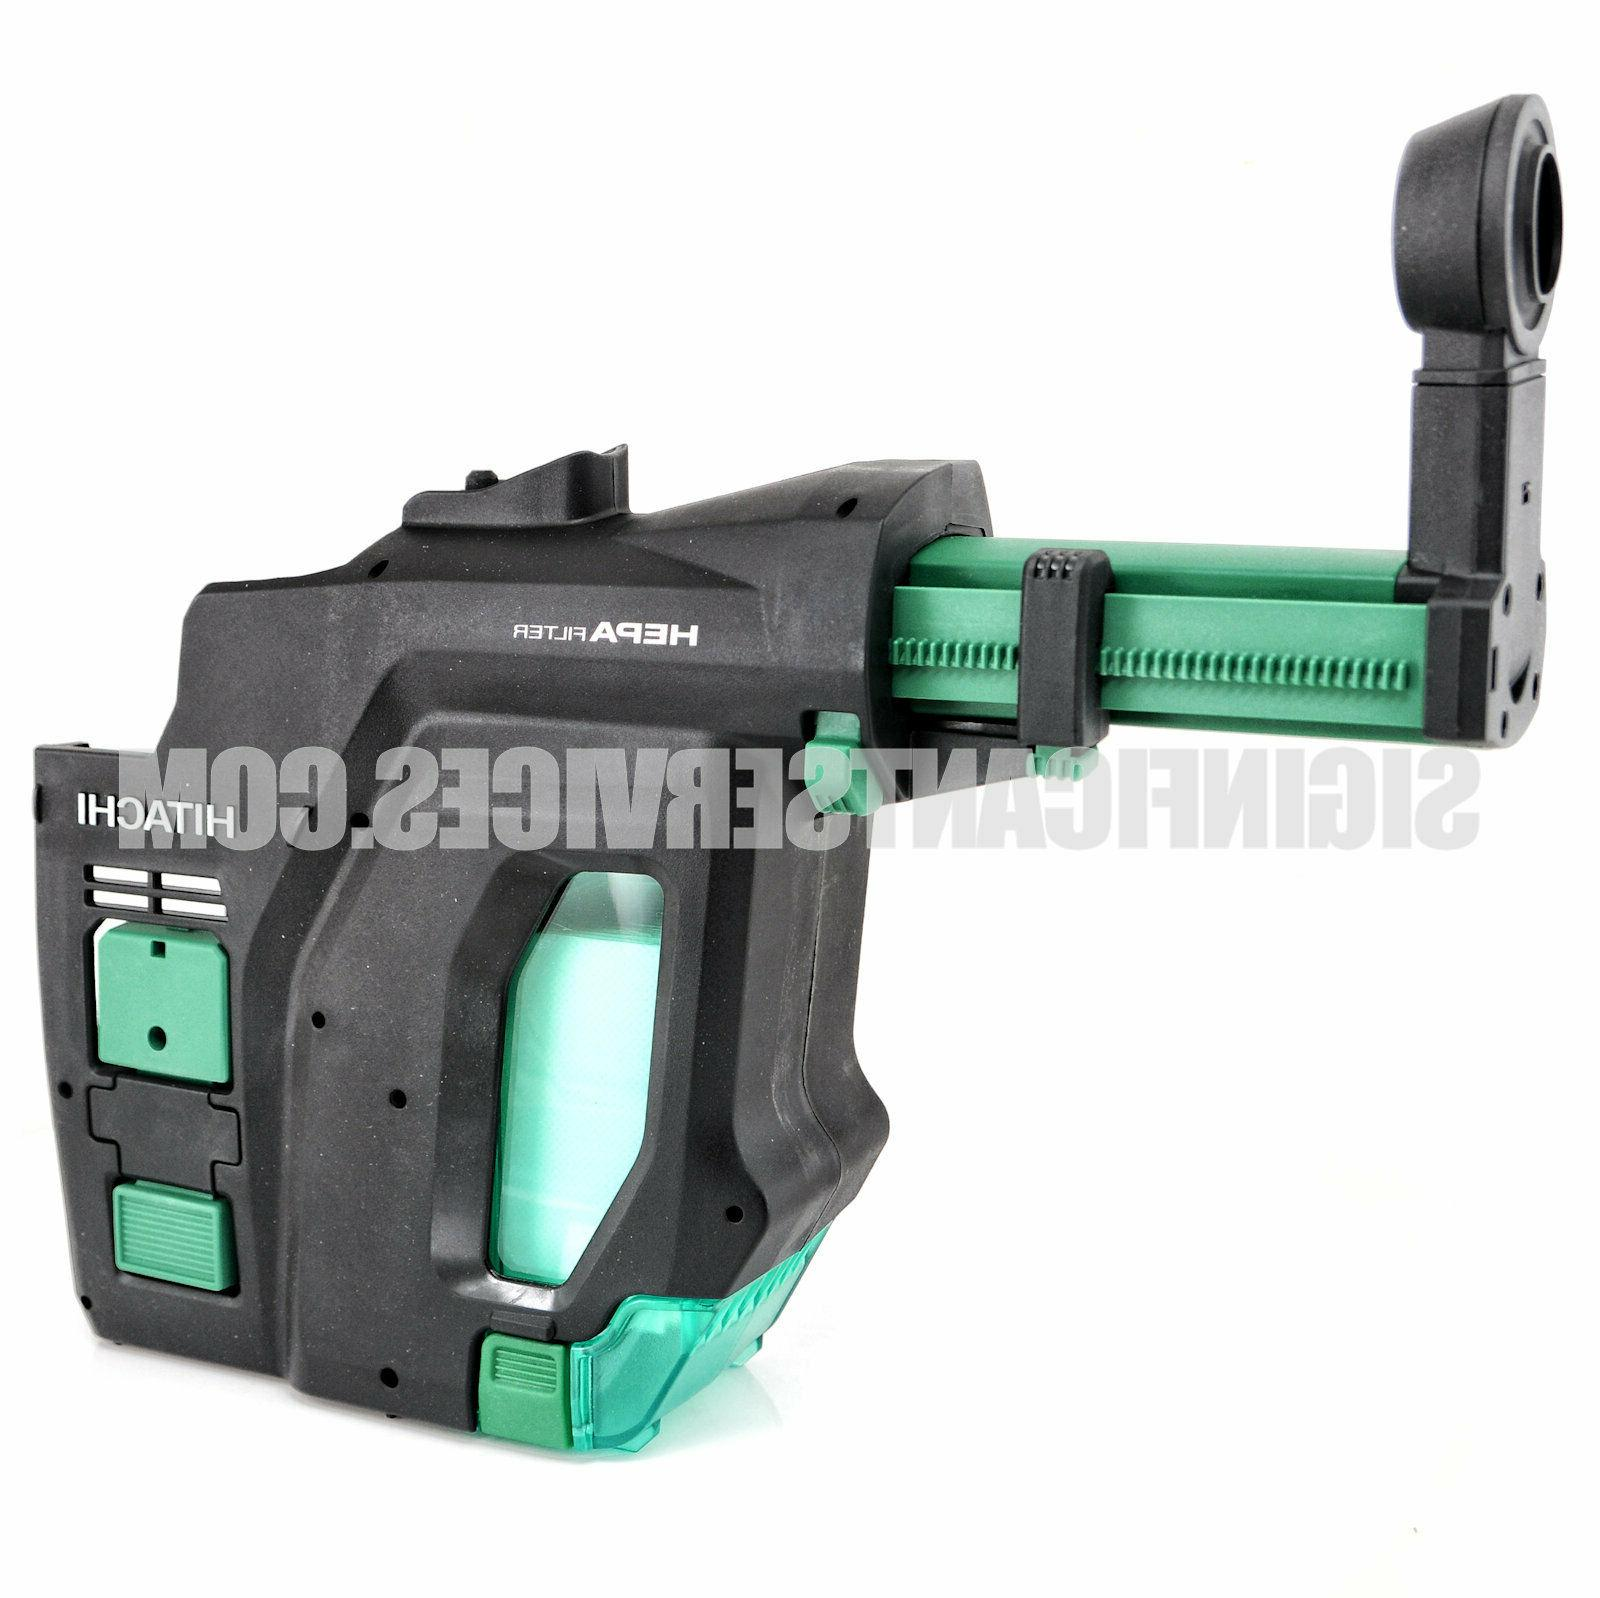 New Hitachi 402976 Dust Extraction Attachment Cordless Rotar